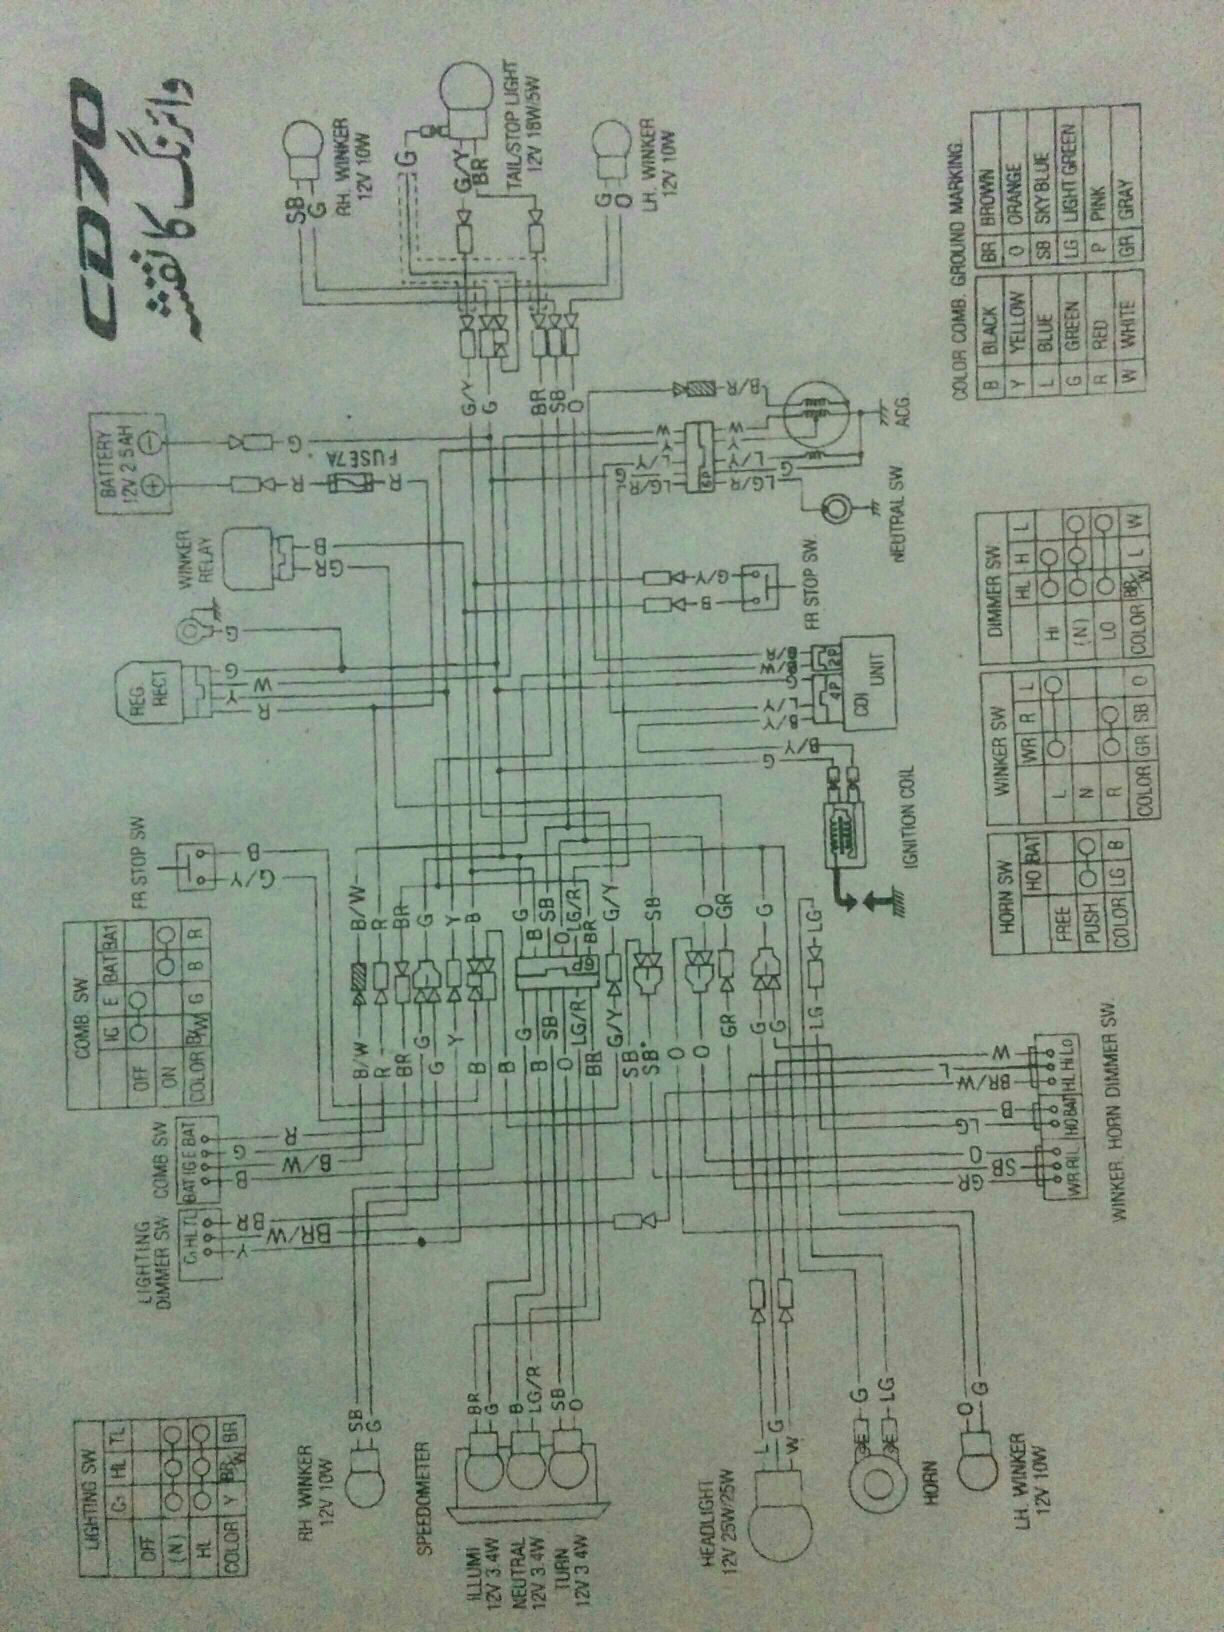 Bike Wiring Diagram Pdf Need Cd70 Service Manual Honda Bikes Pakwheels Forums Sent From My Nexus 5 Using Tapatalk